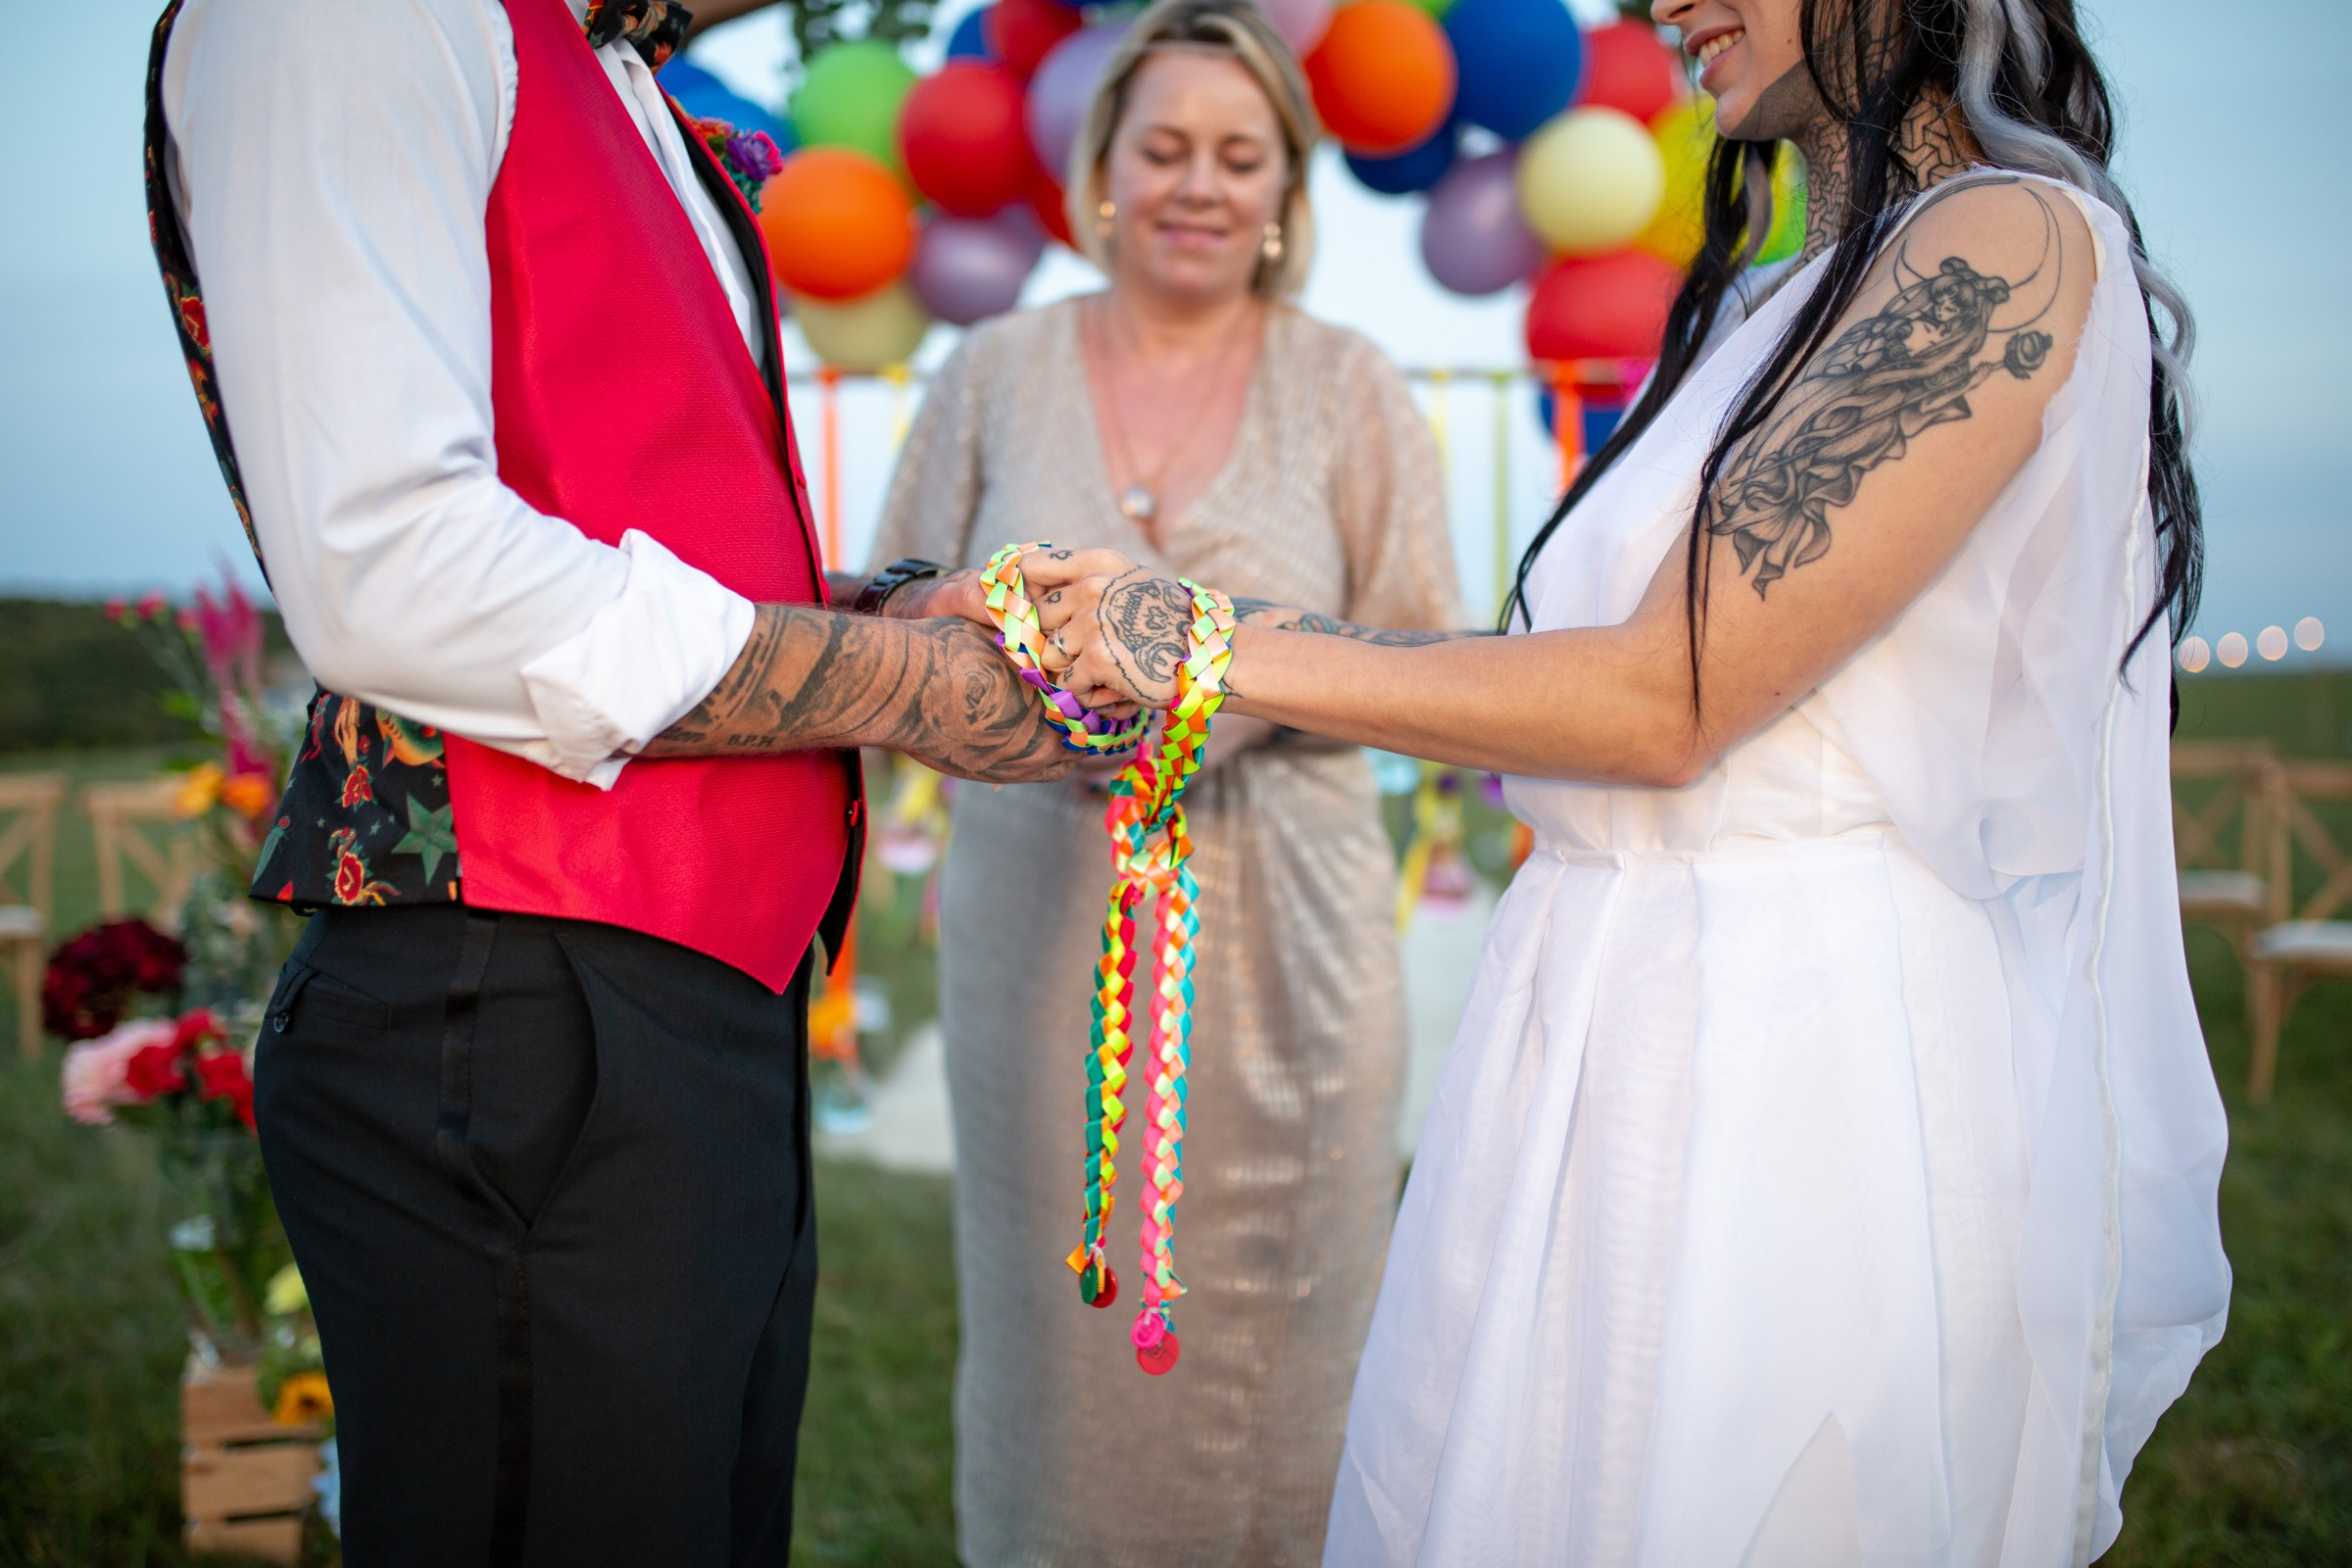 rainbow festival wedding - colourful wedding - quirky wedding ideas - handfasting ceremony with colourful ribbon